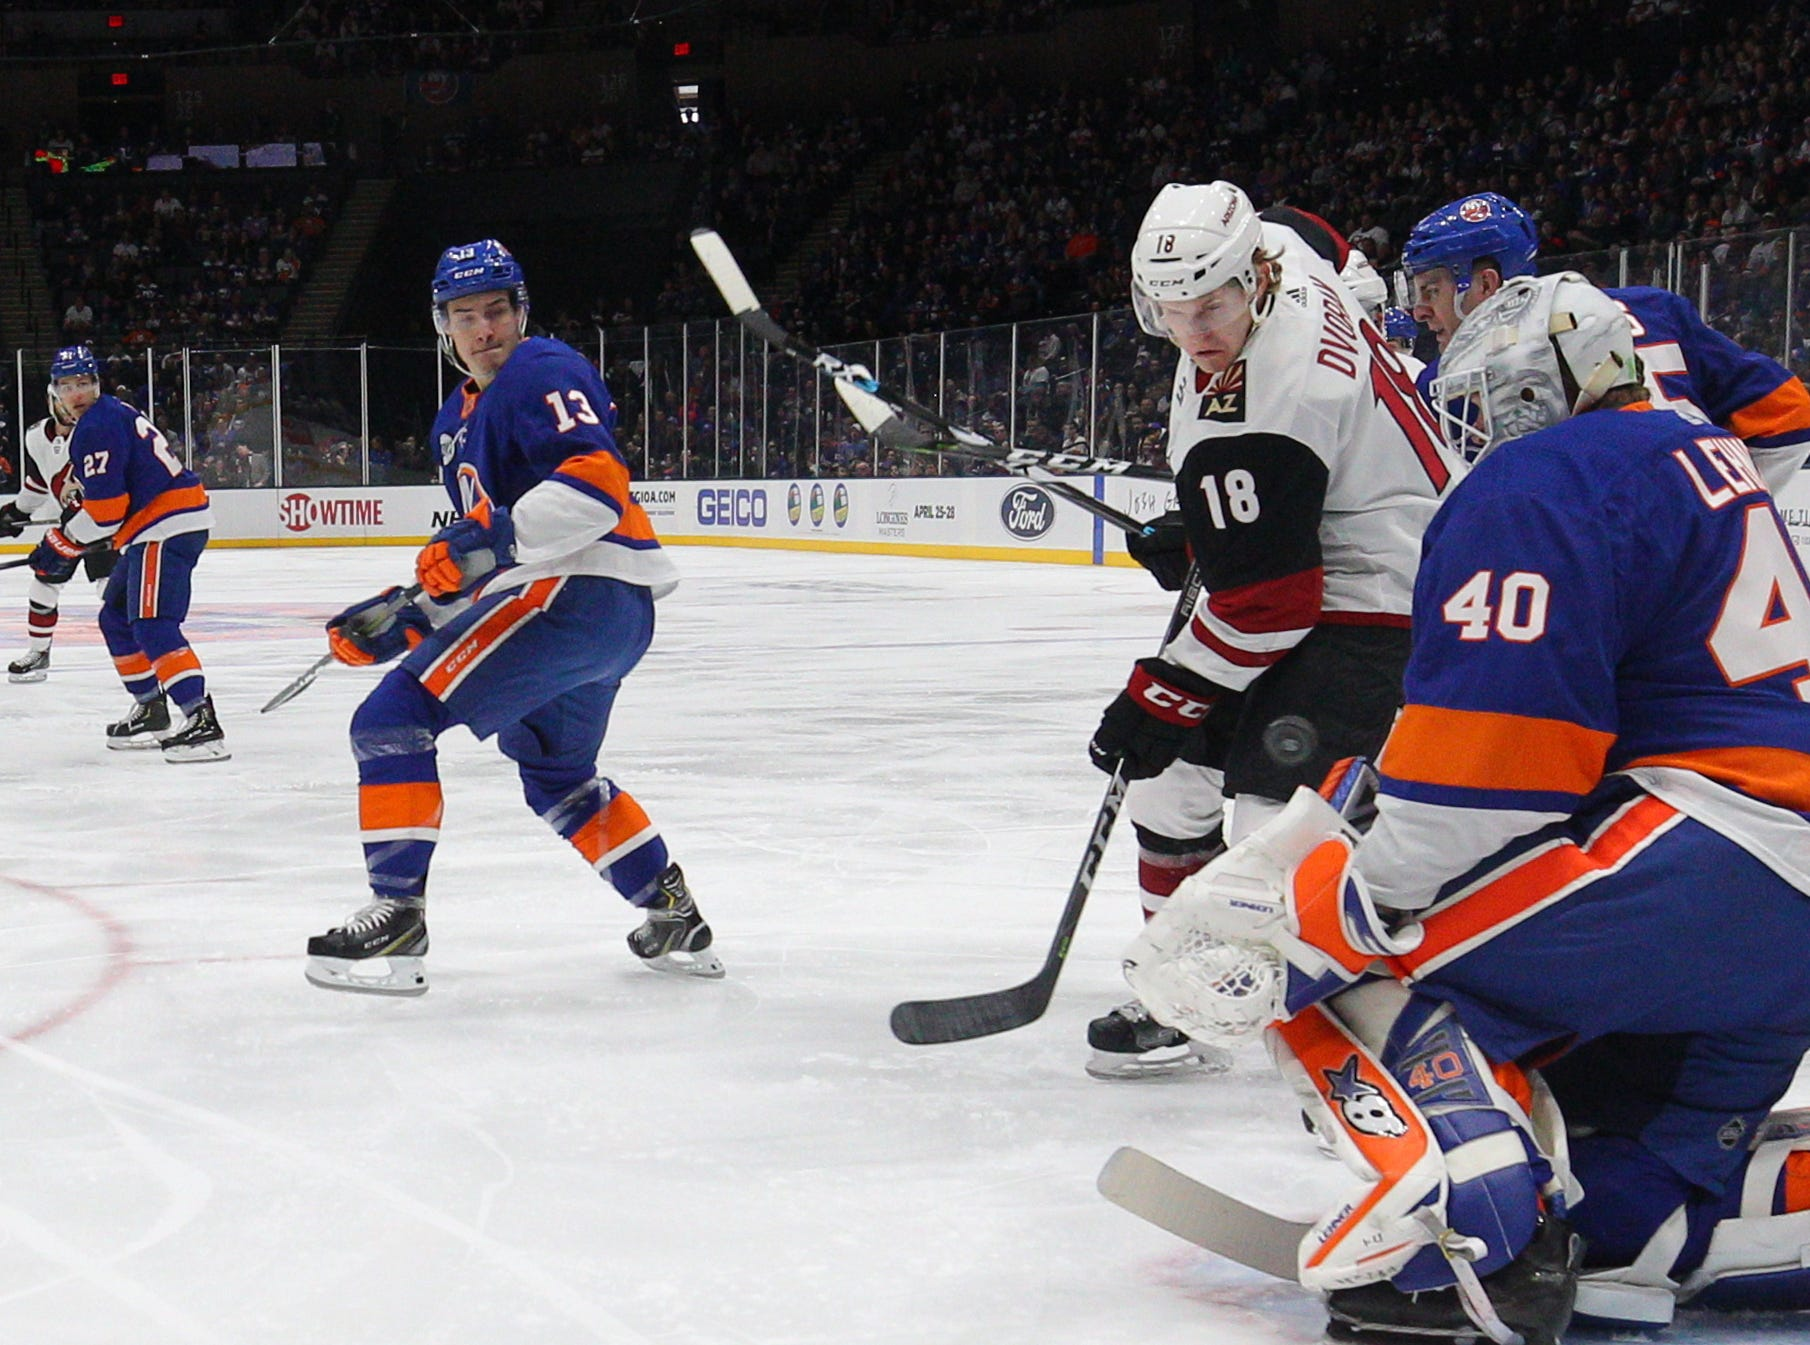 Islanders goalie Robin Lehner (40) makes a save in front of Coyotes center Christian Dvorak (18) during the first period of a game at Nassau Veterans Memorial Coliseum.